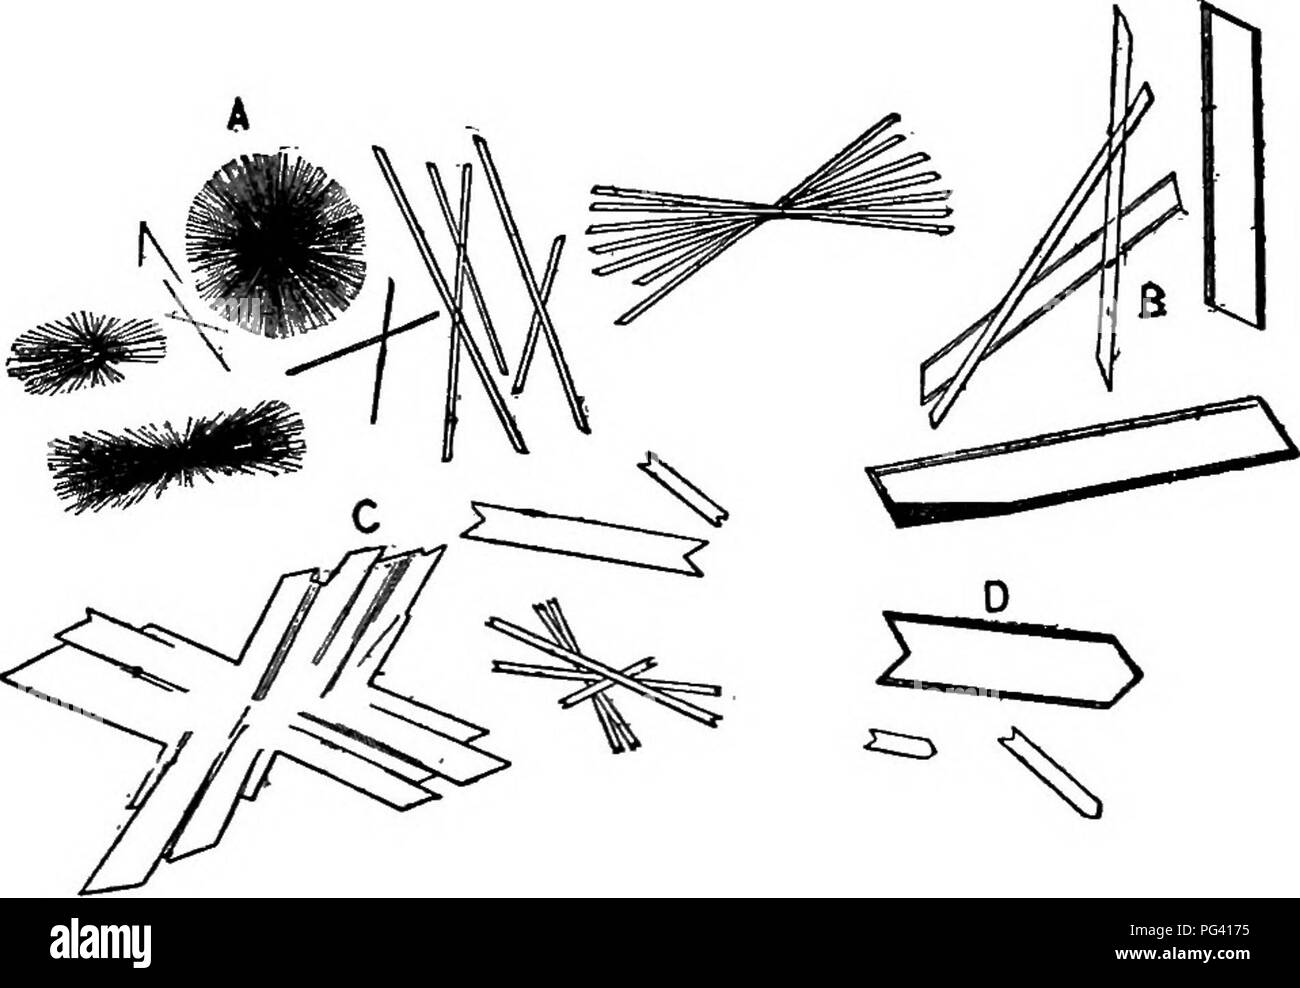 . Elements of applied microscopy. A text-book for beginners. Microscopy. FiG. 54.—Crystals of C-esidm Alum. (After Lehmann.) phate. From dilute acid solutions slender monoclinic prisms of the compound (CaS04+ 2H2O) crystallize out. Fig. 55.—Crystals of Calcium Sulphate. (After Lehmann.) (Fig. 55), showing numerous double twins, as at C, and in presence of strong acids, masses of minute needle- like crystals, as at .4.. Please note that these images are extracted from scanned page images that may have been digitally enhanced for readability - coloration and appearance of these illustrations may - Stock Image